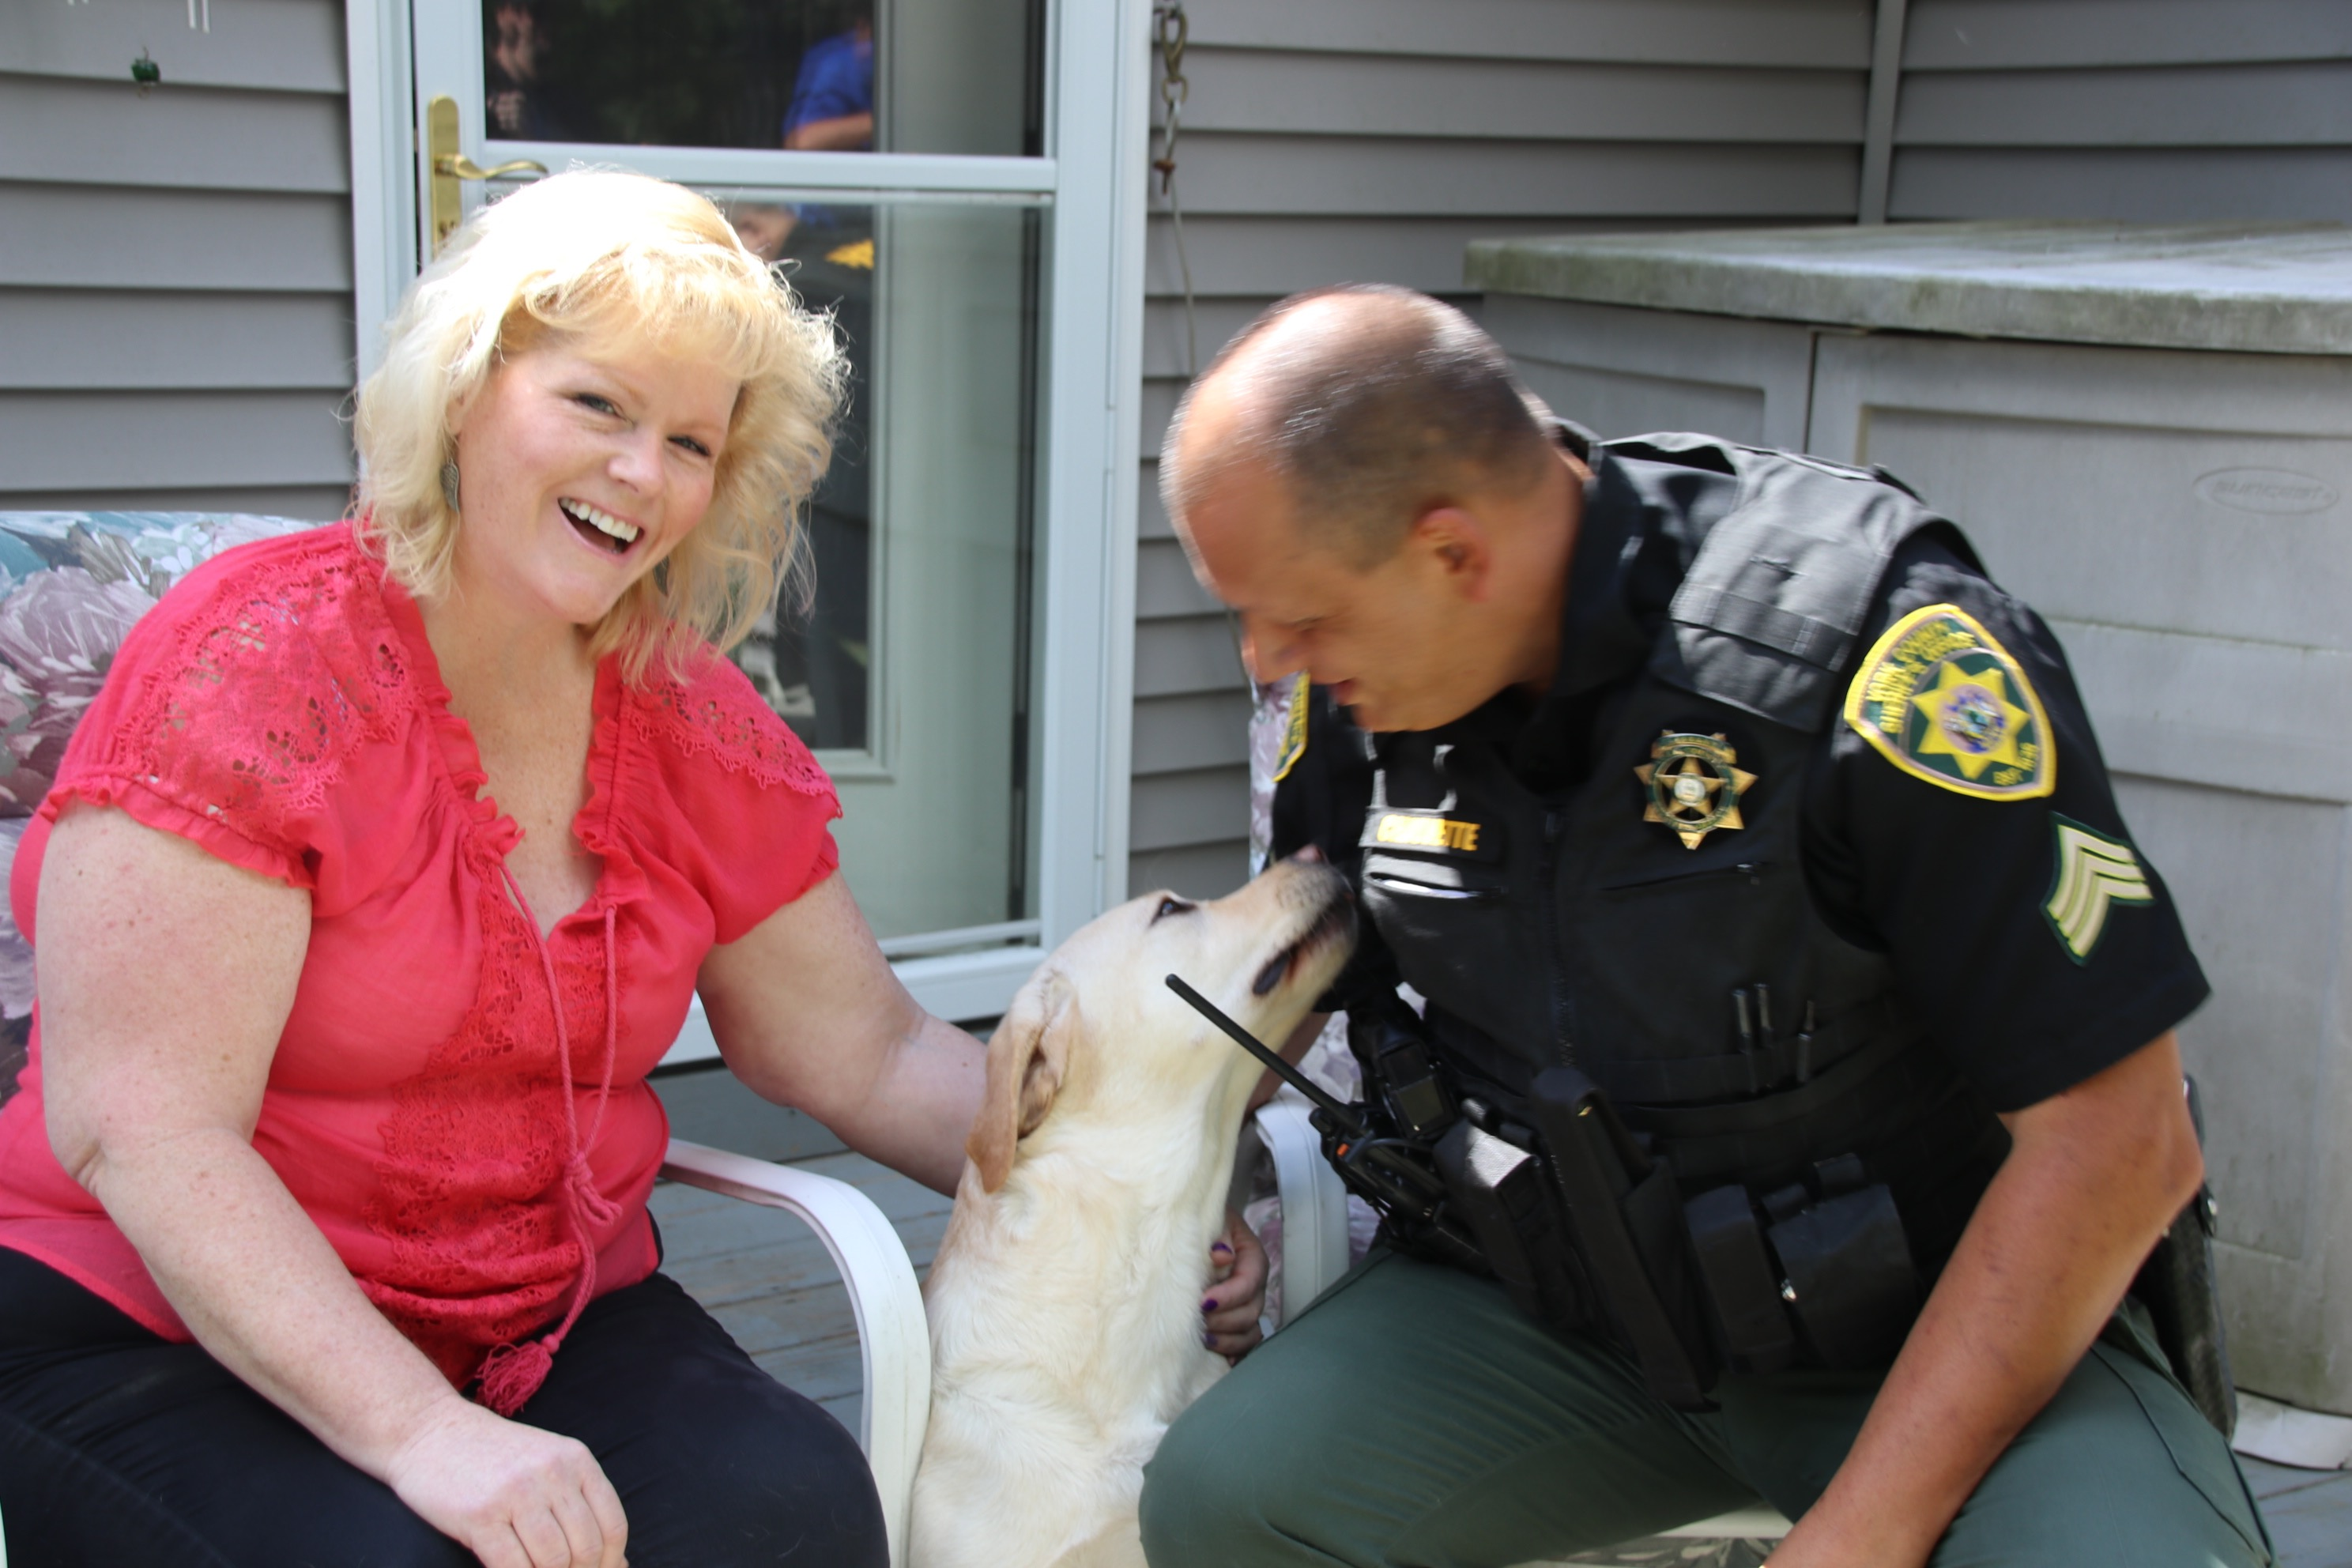 Addie, a 3 1/2 year old Labrador retriever, gives York County Sheriff's Office Sgt. Dave Chauvette a snuggle Friday morning while her owner, Leslie Reynolds, looks on. Chauvette stepped in and administered Narcan to the dog after she accidentally ingested oxycodone Thursday morning. TAMMY WELLS/Journal Tribune